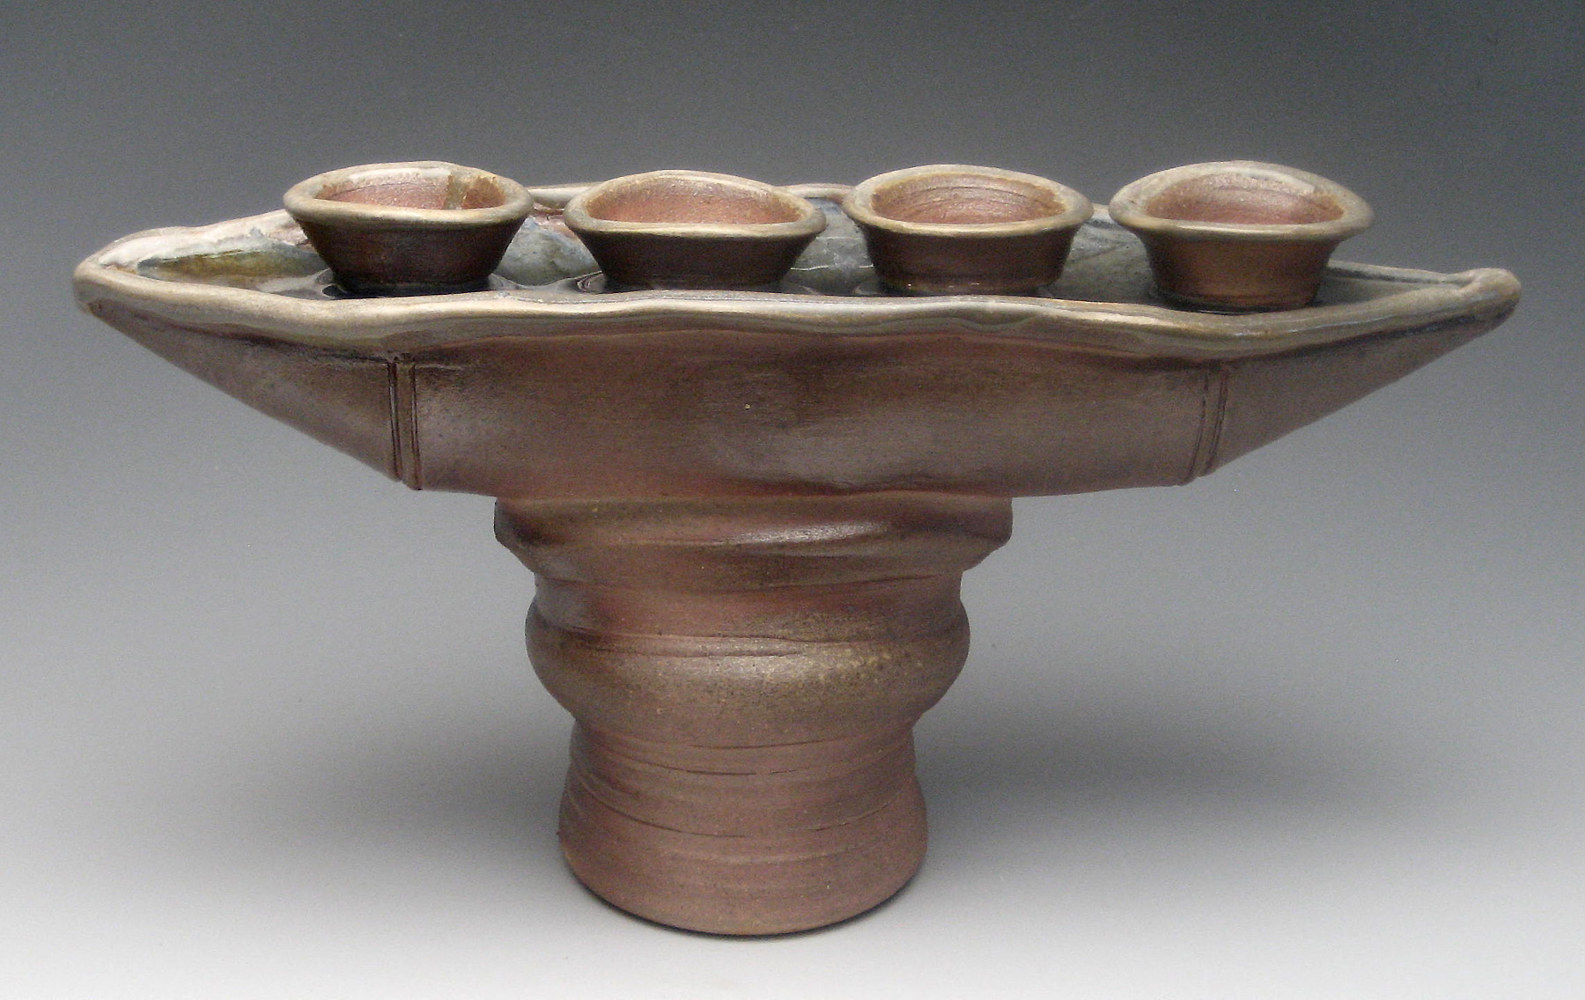 Wood fired Candle Holder by Vicky Smith